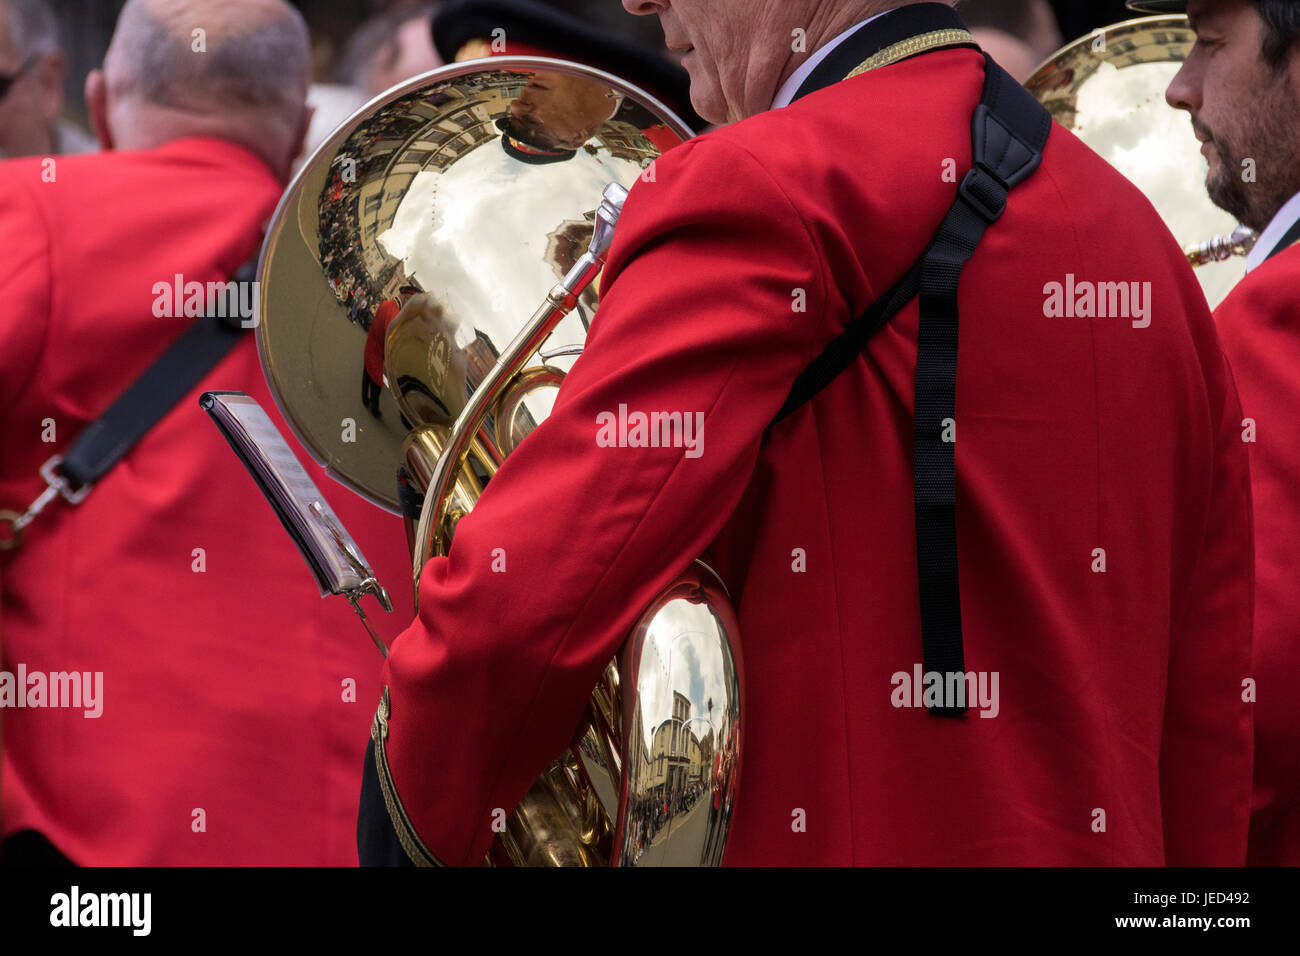 Tuba Reflections - Reflections of the Torrington Mayfair Celebrations in a Well Polished Tuba of the Torrington - Stock Image